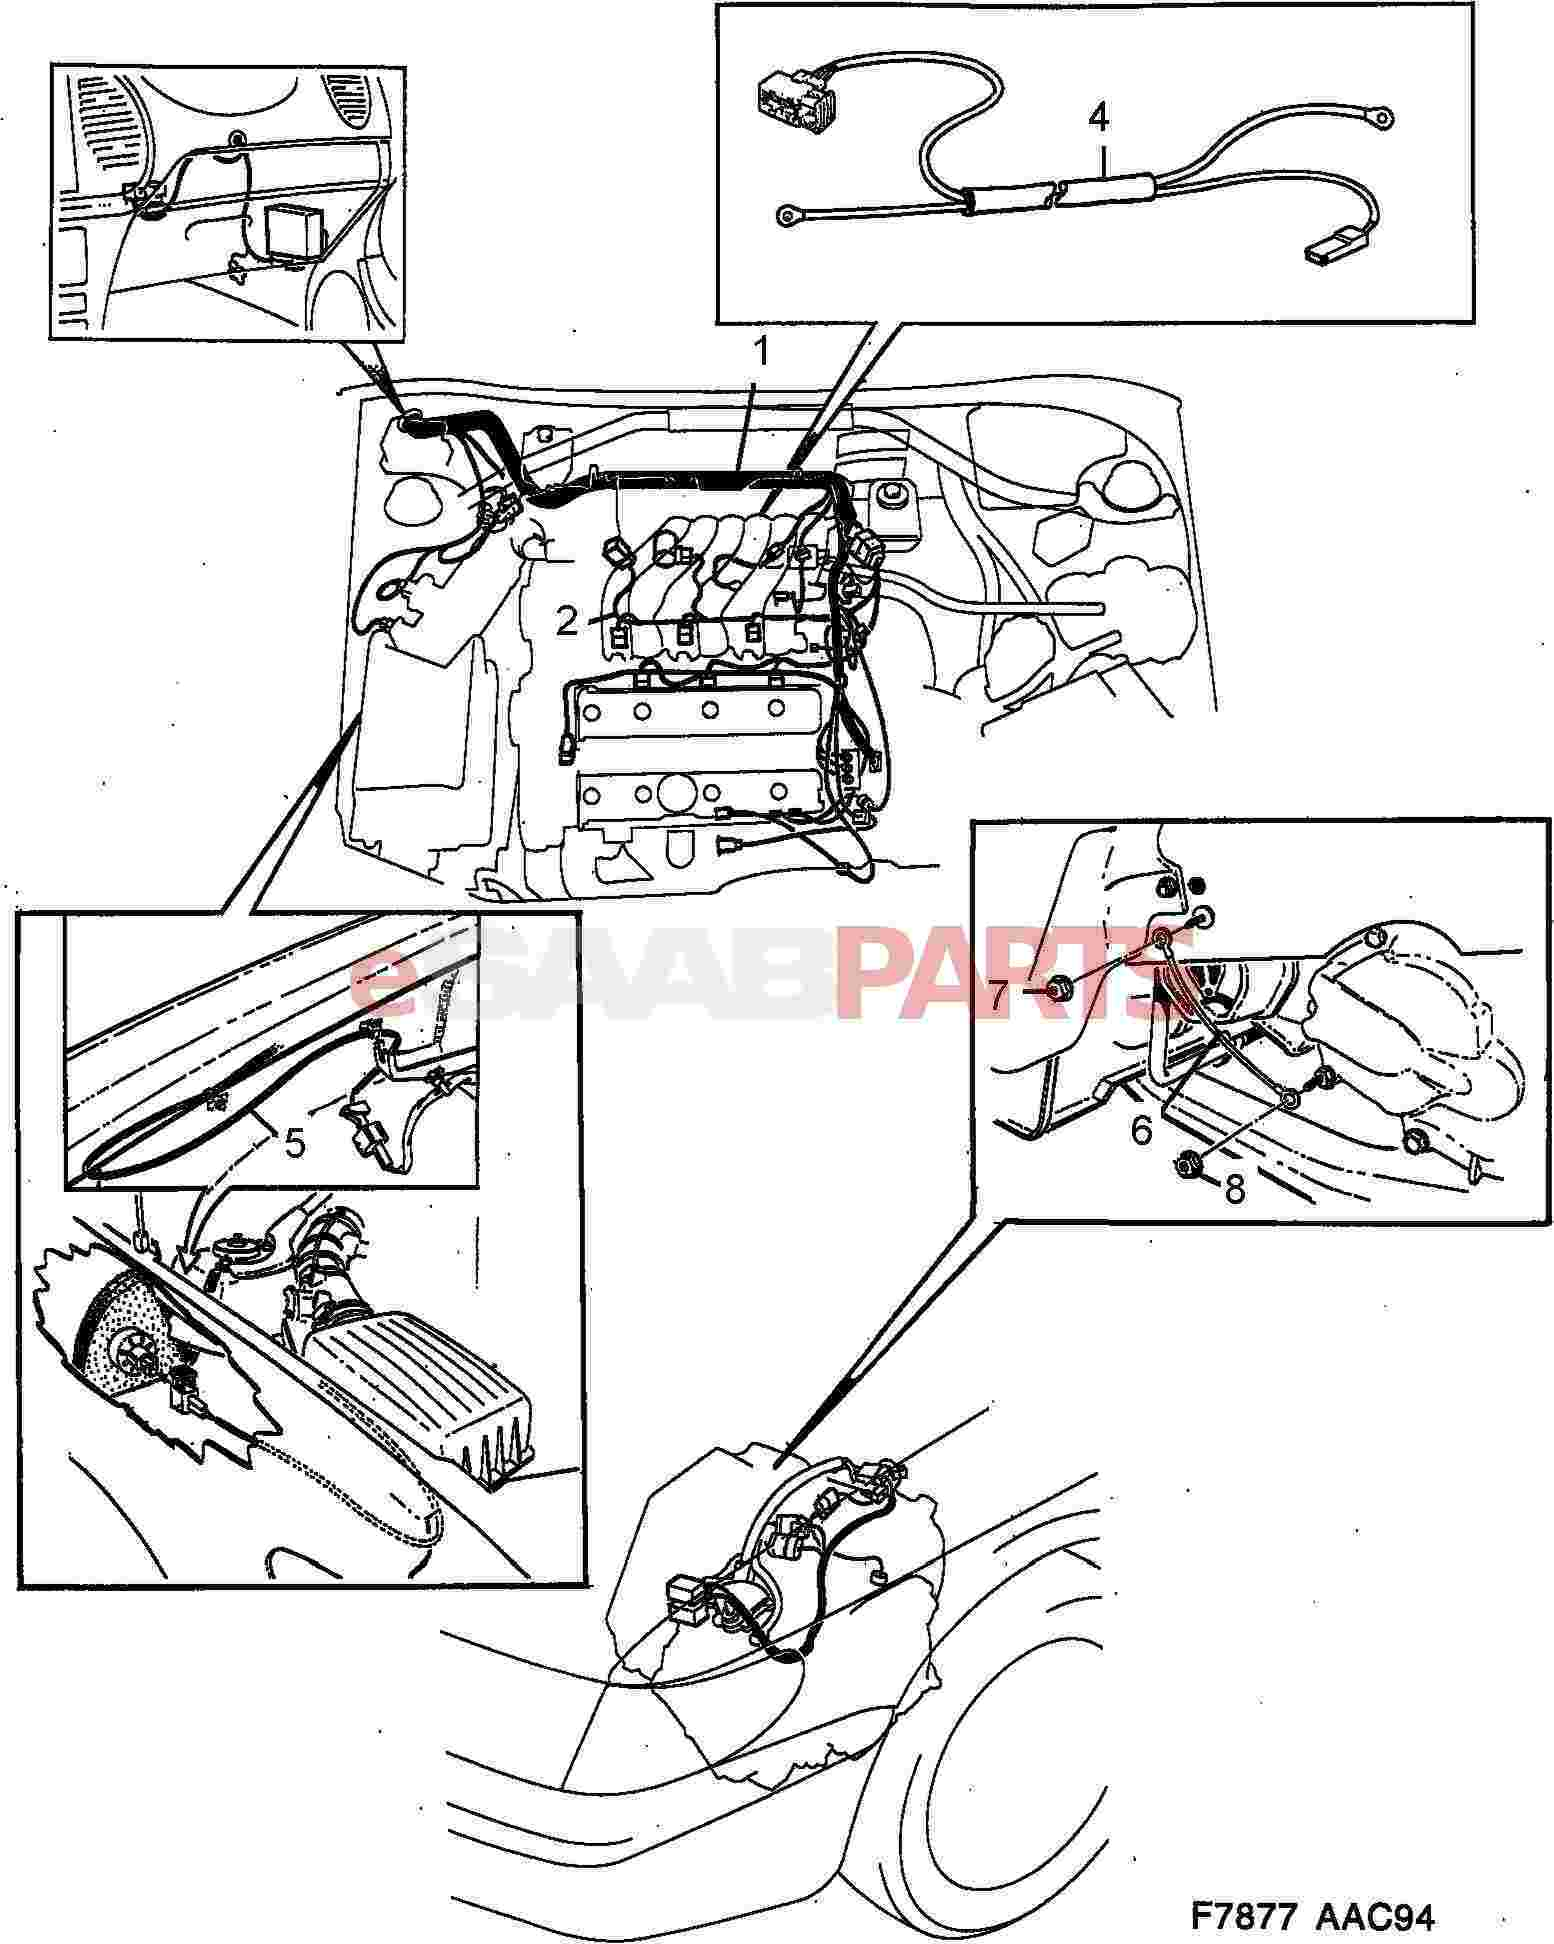 4691556  saab cable harness